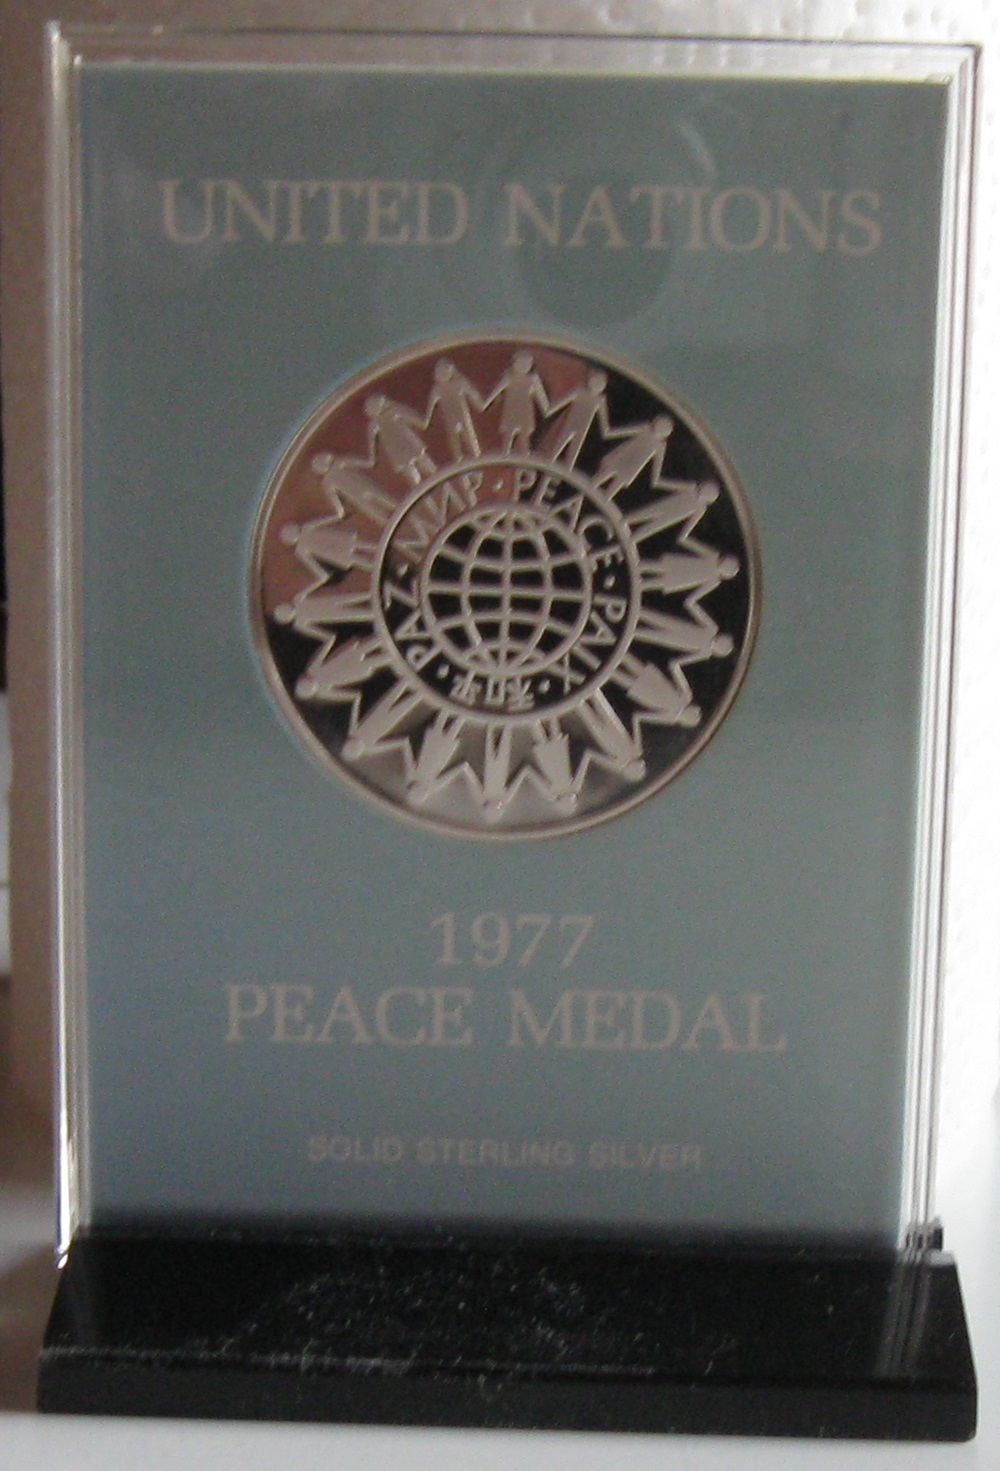 0200 United Nations peace medal 1977